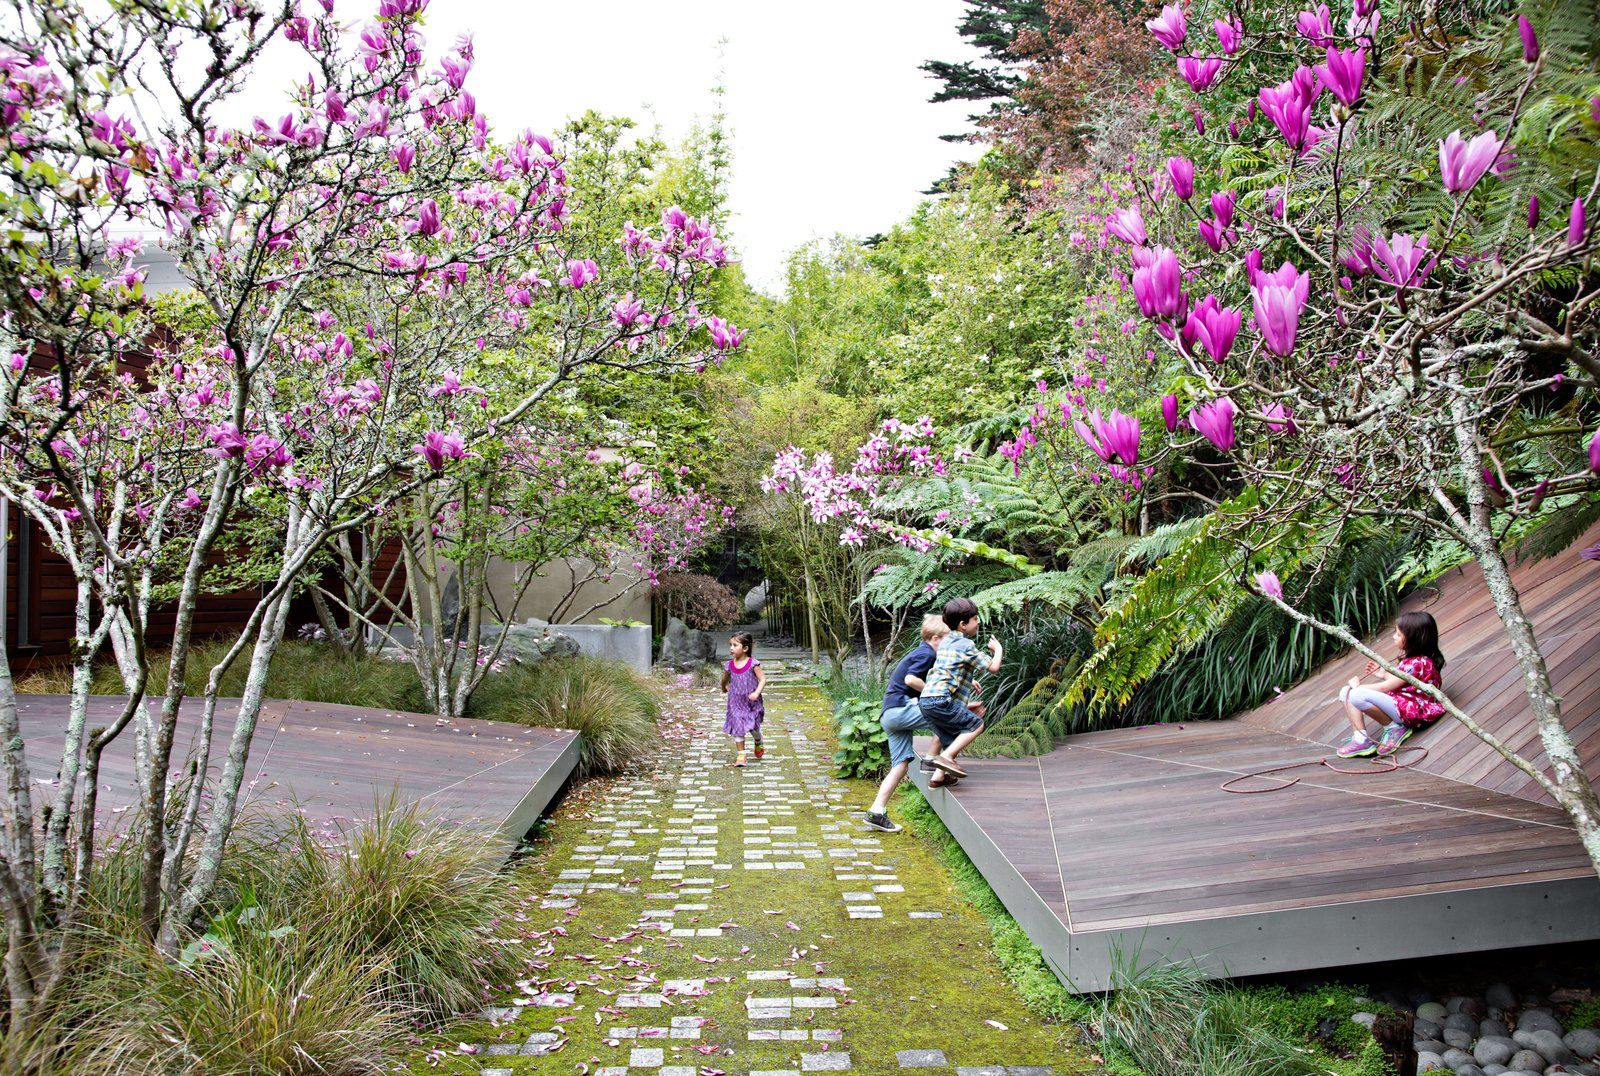 Outdoor, Back Yard, Front Yard, Side Yard, Trees, Grass, Hardscapes, Walkways, and Gardens  Best Outdoor Hardscapes Front Yard Photos from This Endless Playscape Is Complete with a Bamboo Forest and Trampoline